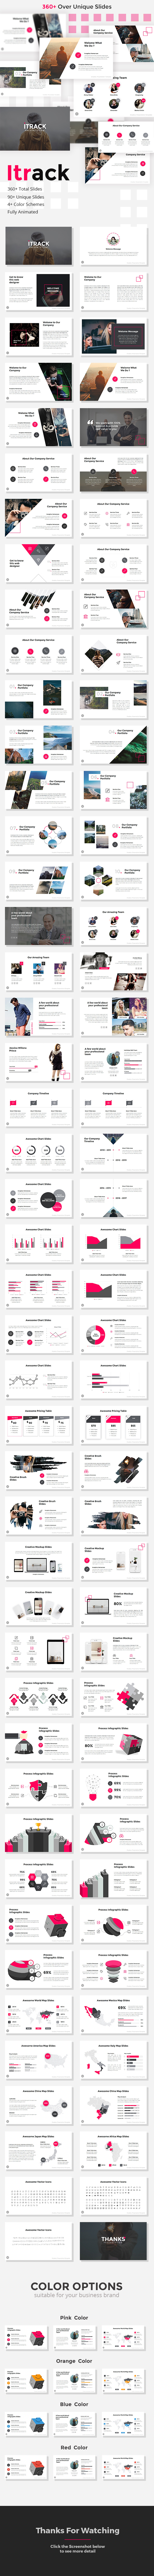 Itrack - StartUp Pitch Deck Google Slides Templates - Pitch Deck PowerPoint Templates